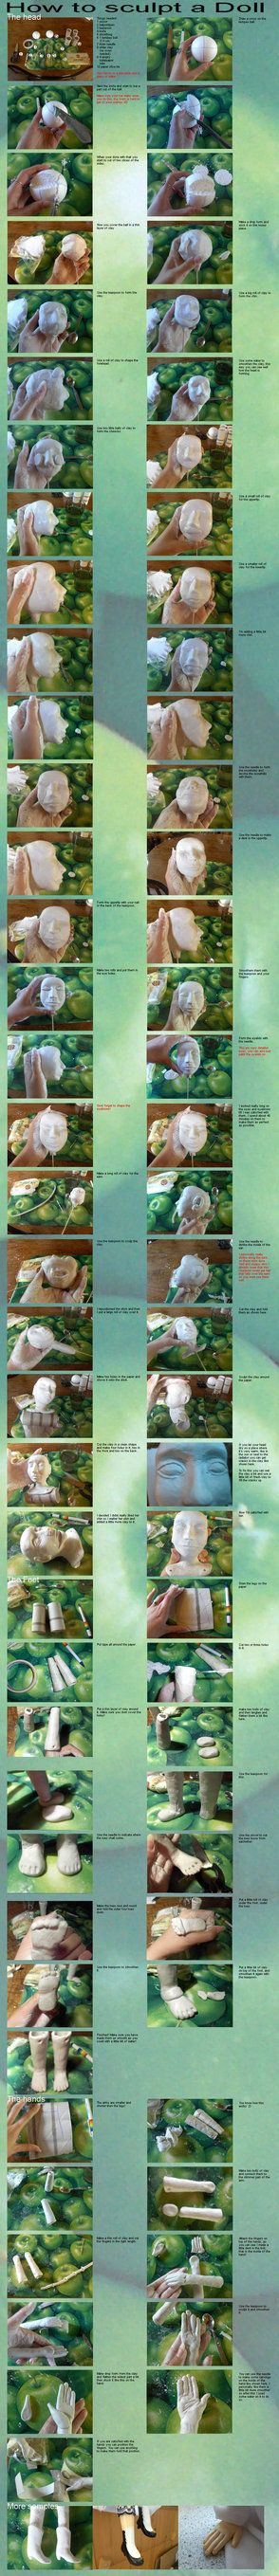 How to sculpt a doll-tutorial- by ~Hamkaastostie on deviantART clay over styrofoam